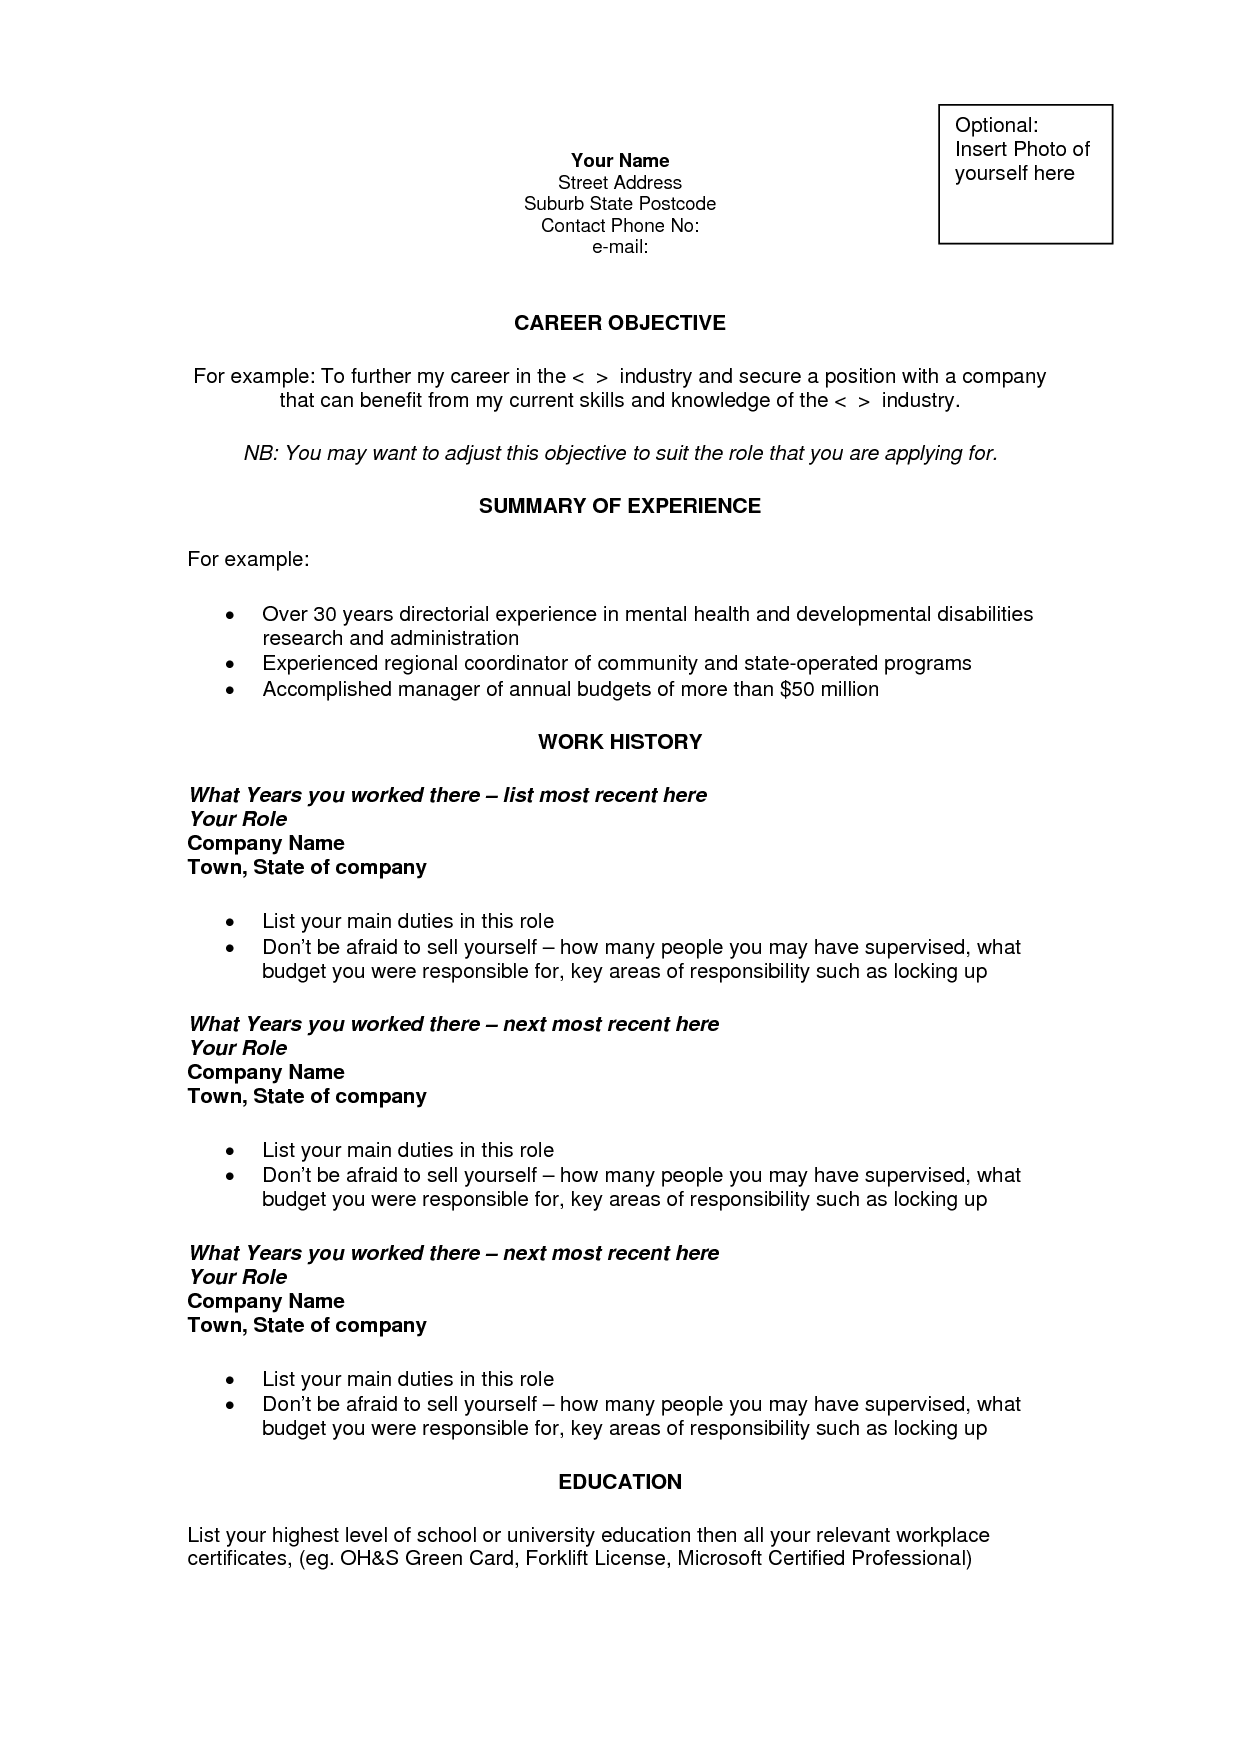 12 general career objective resume samplebusinessresume com career objective statements for resume